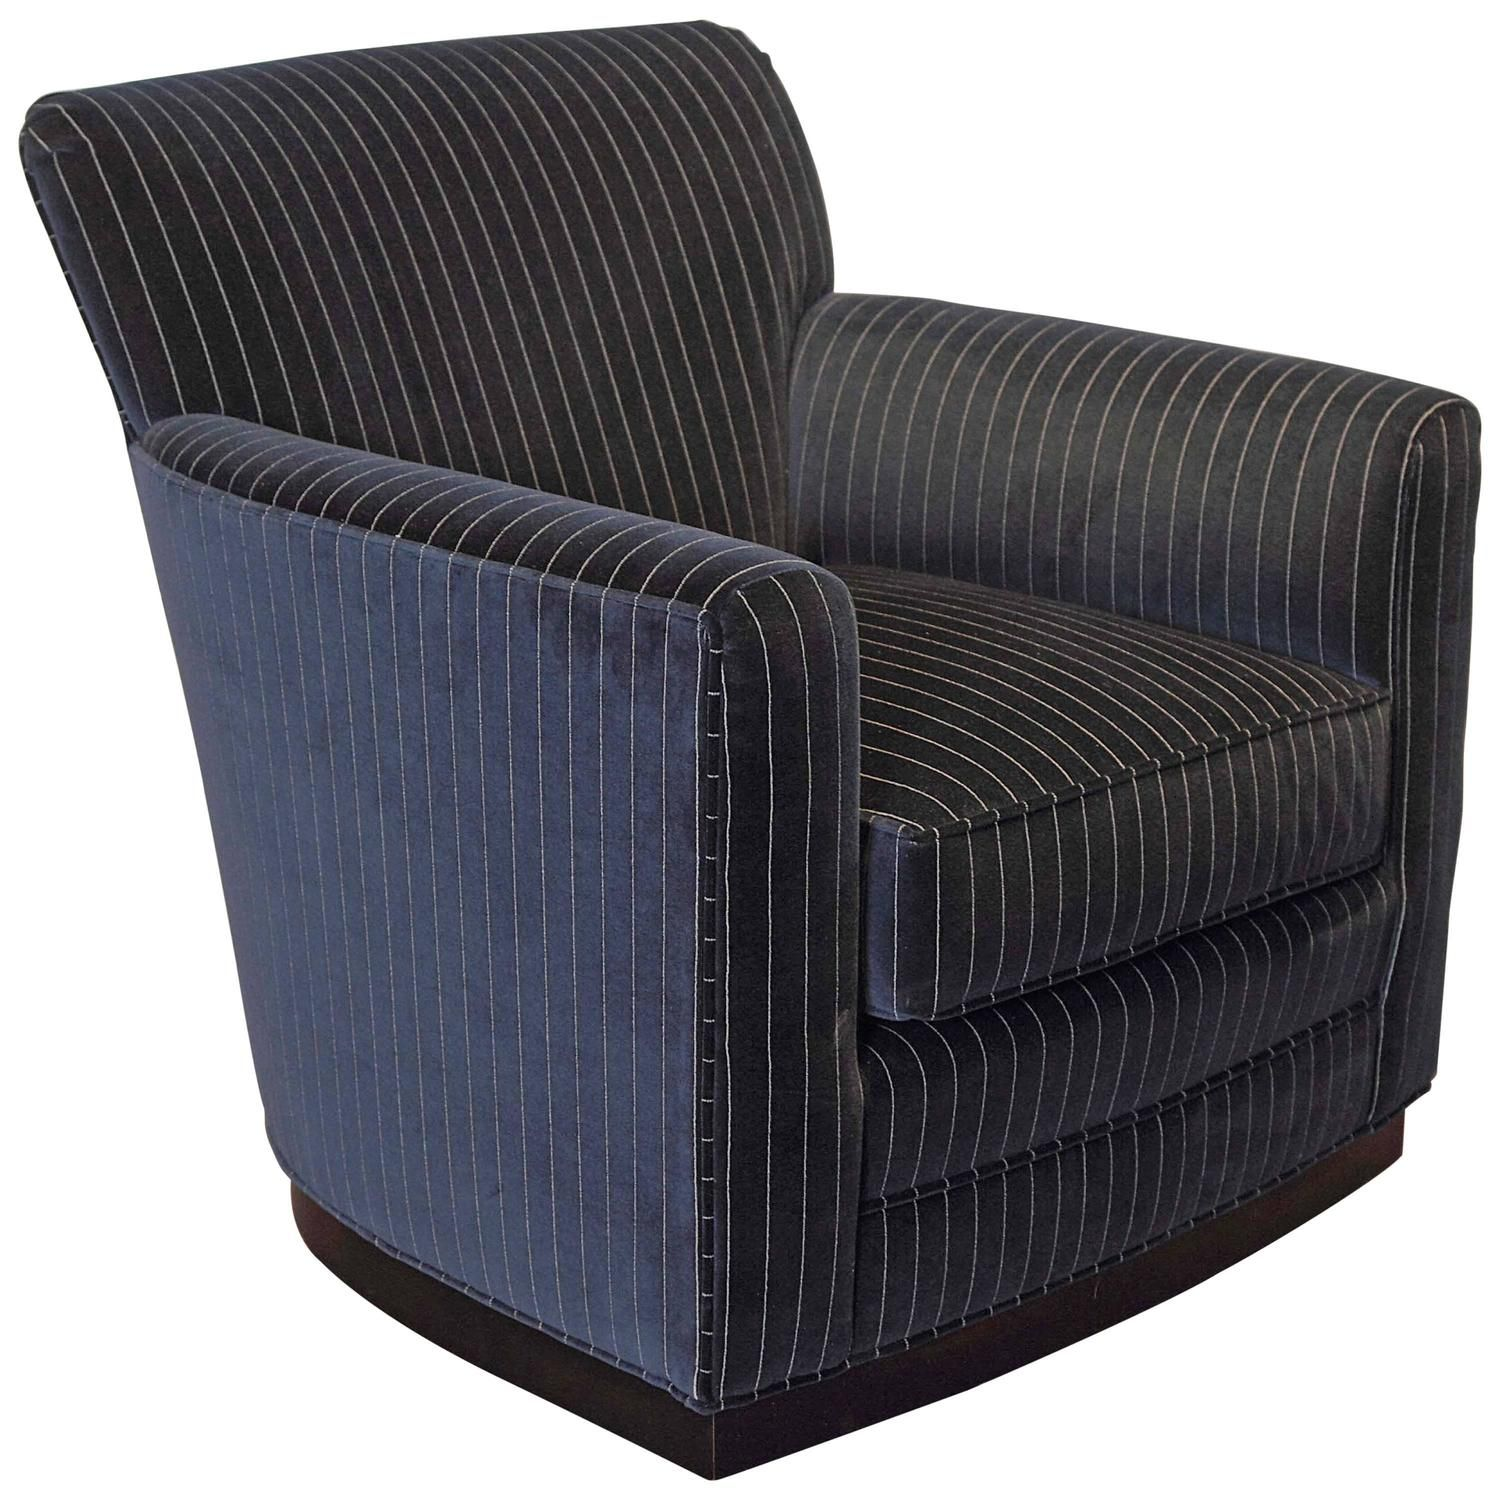 Navy Stripe Swivel Chair Swivel chair, Chair, Chairs for